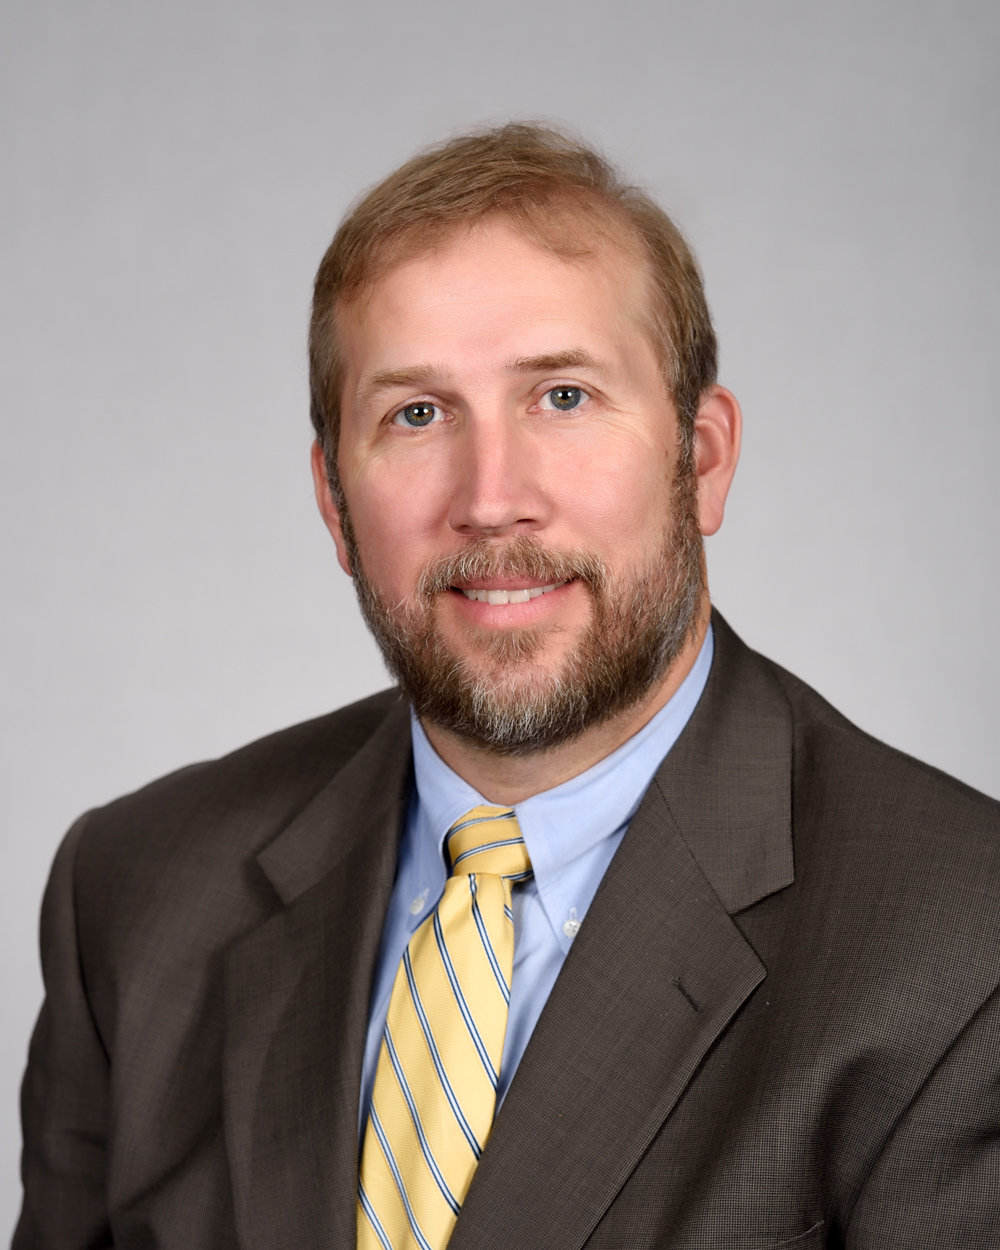 Paul D. Cook, PE - Vice President and Director of Operations